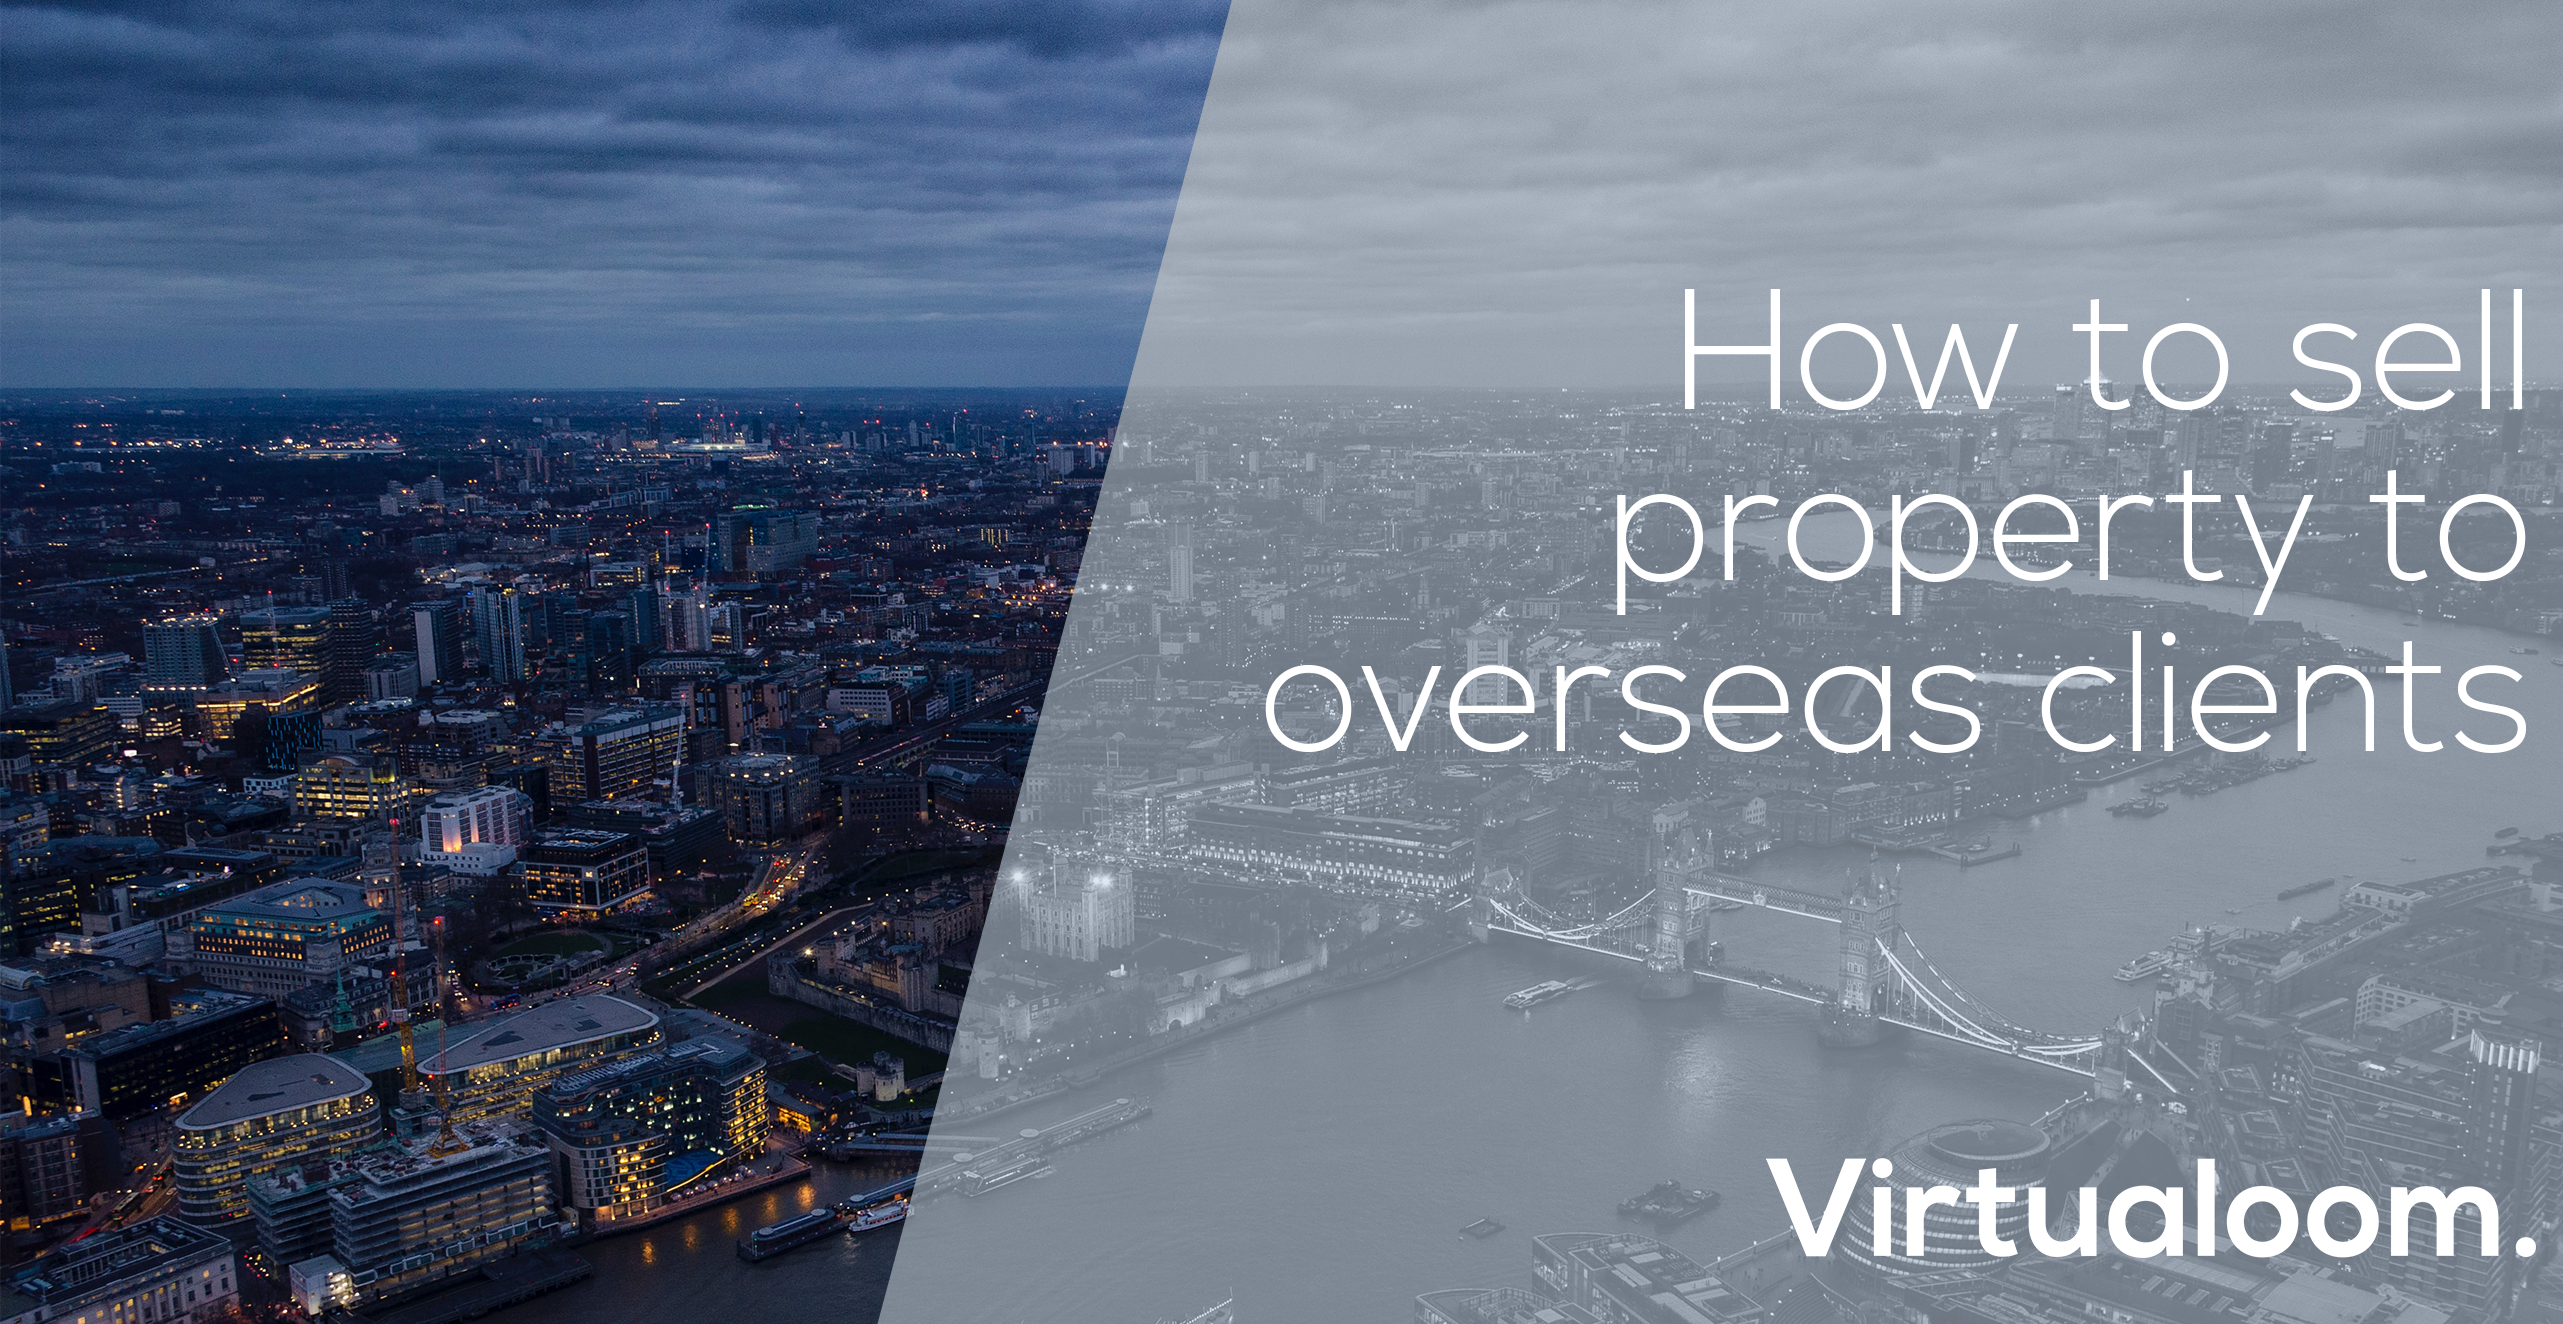 how to sell property to overseas clients